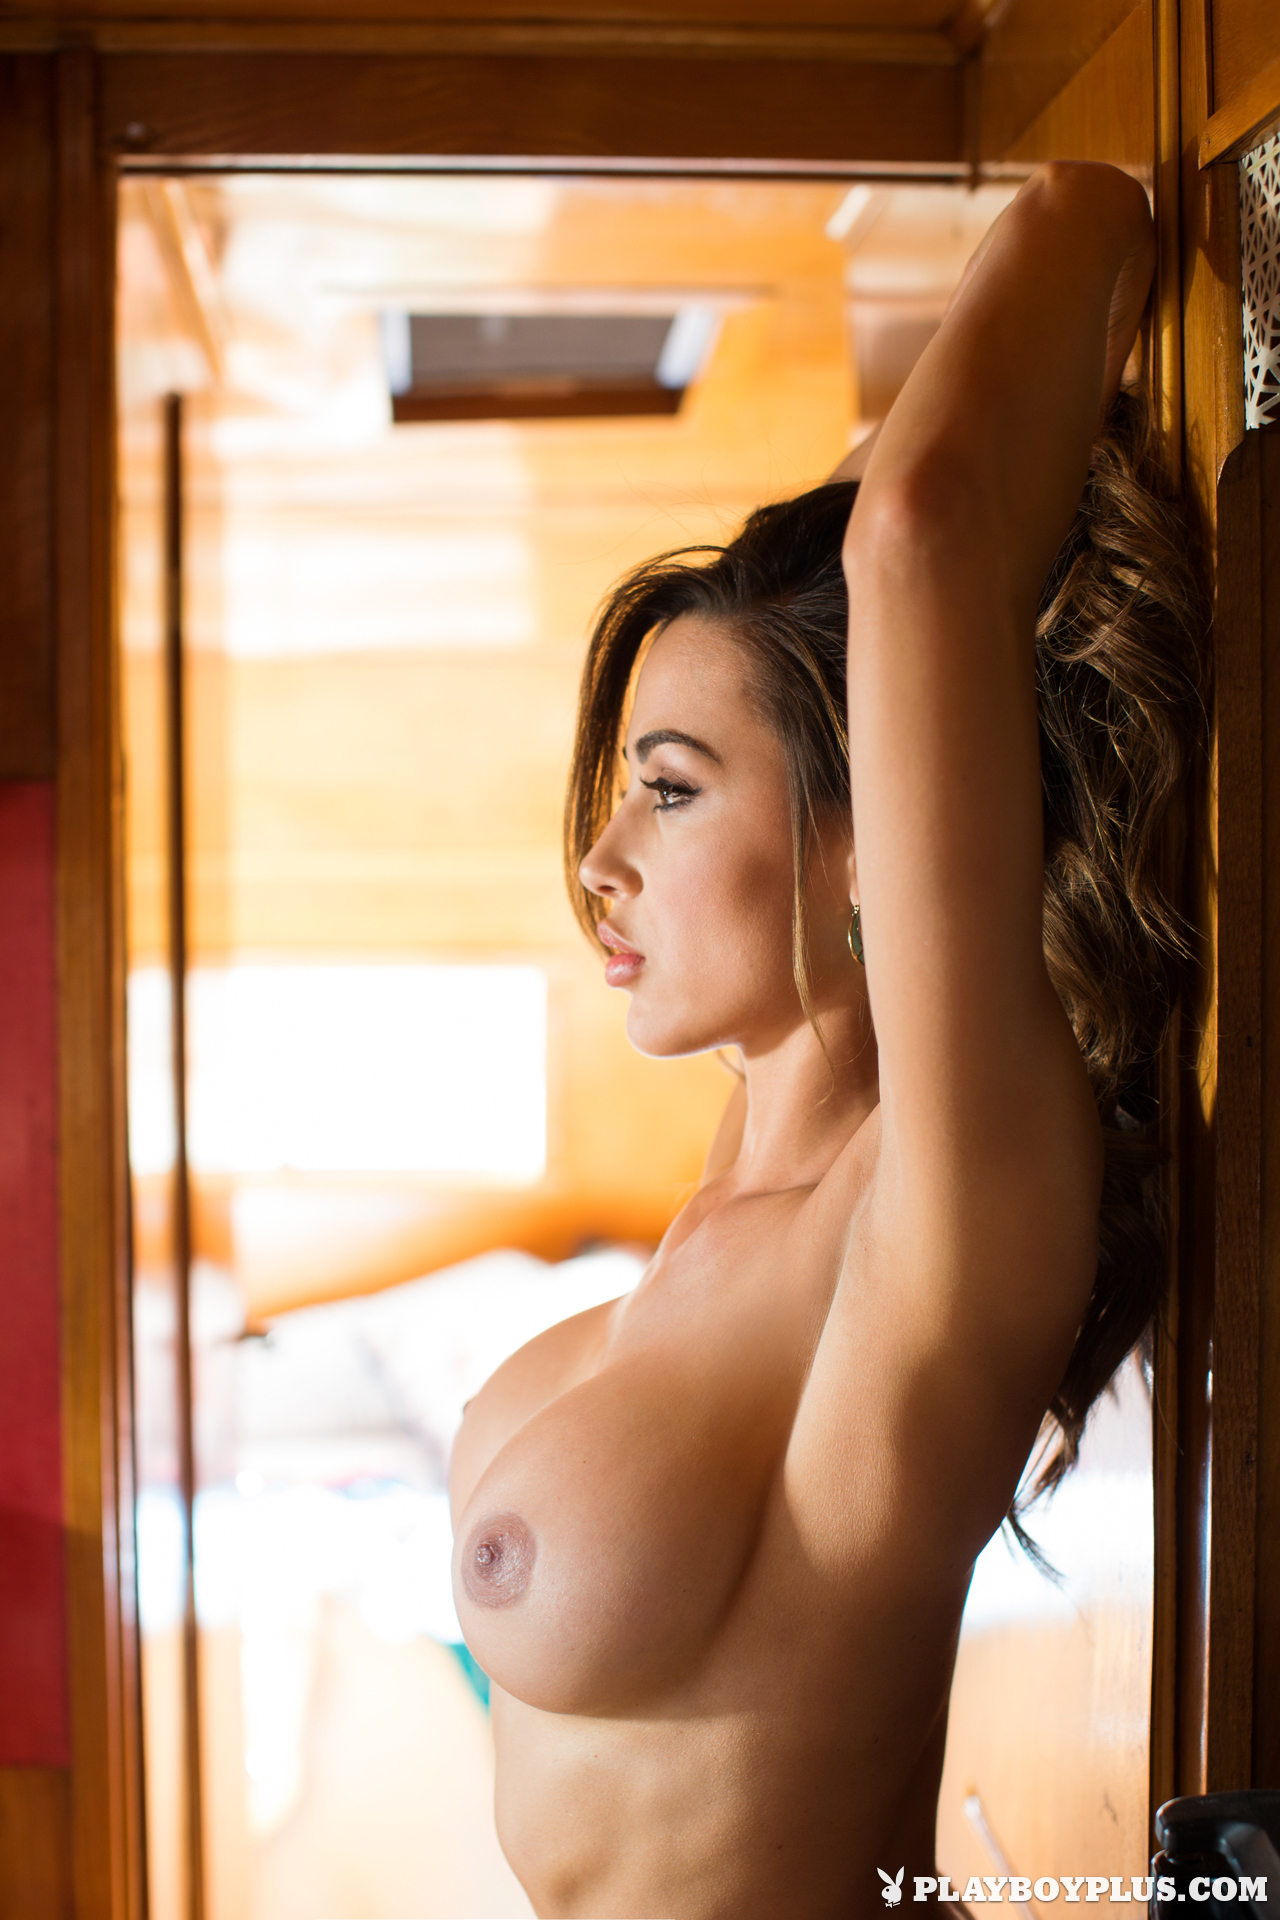 Ana Cheri Playboy Nude ana cheri nude pictures. rating = 9.46/10